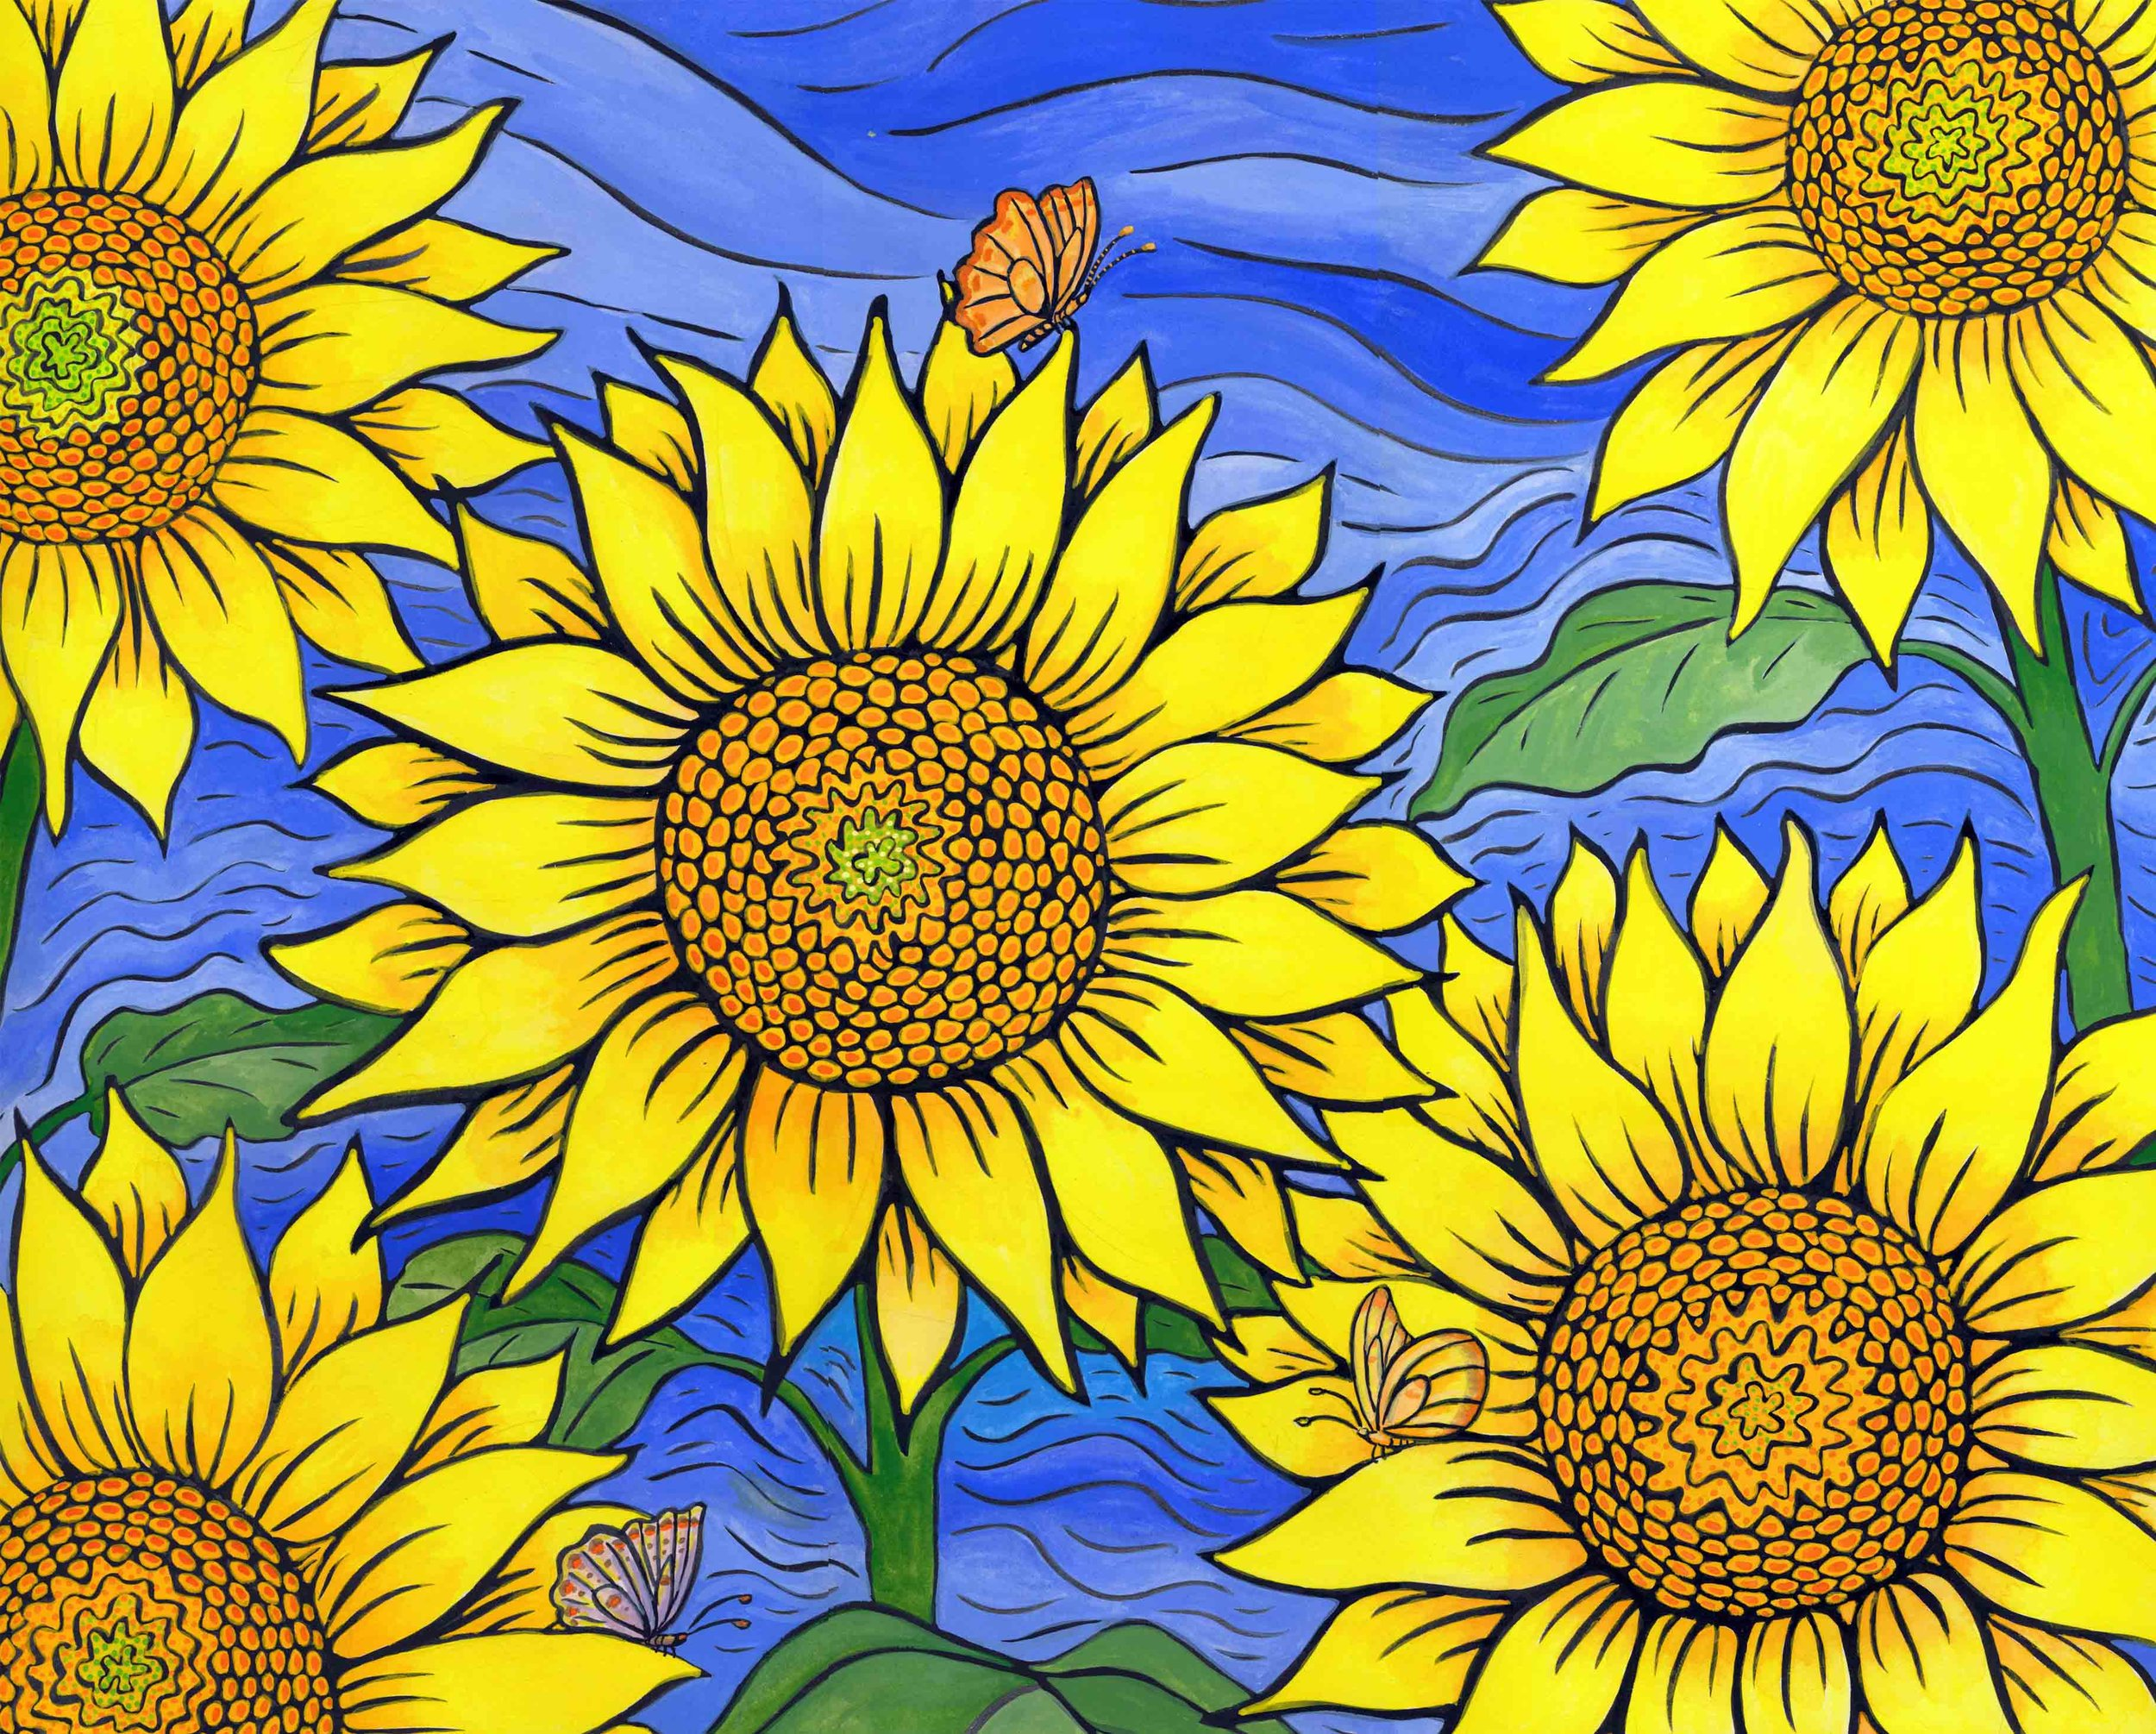 sunflowers low res 2.jpg